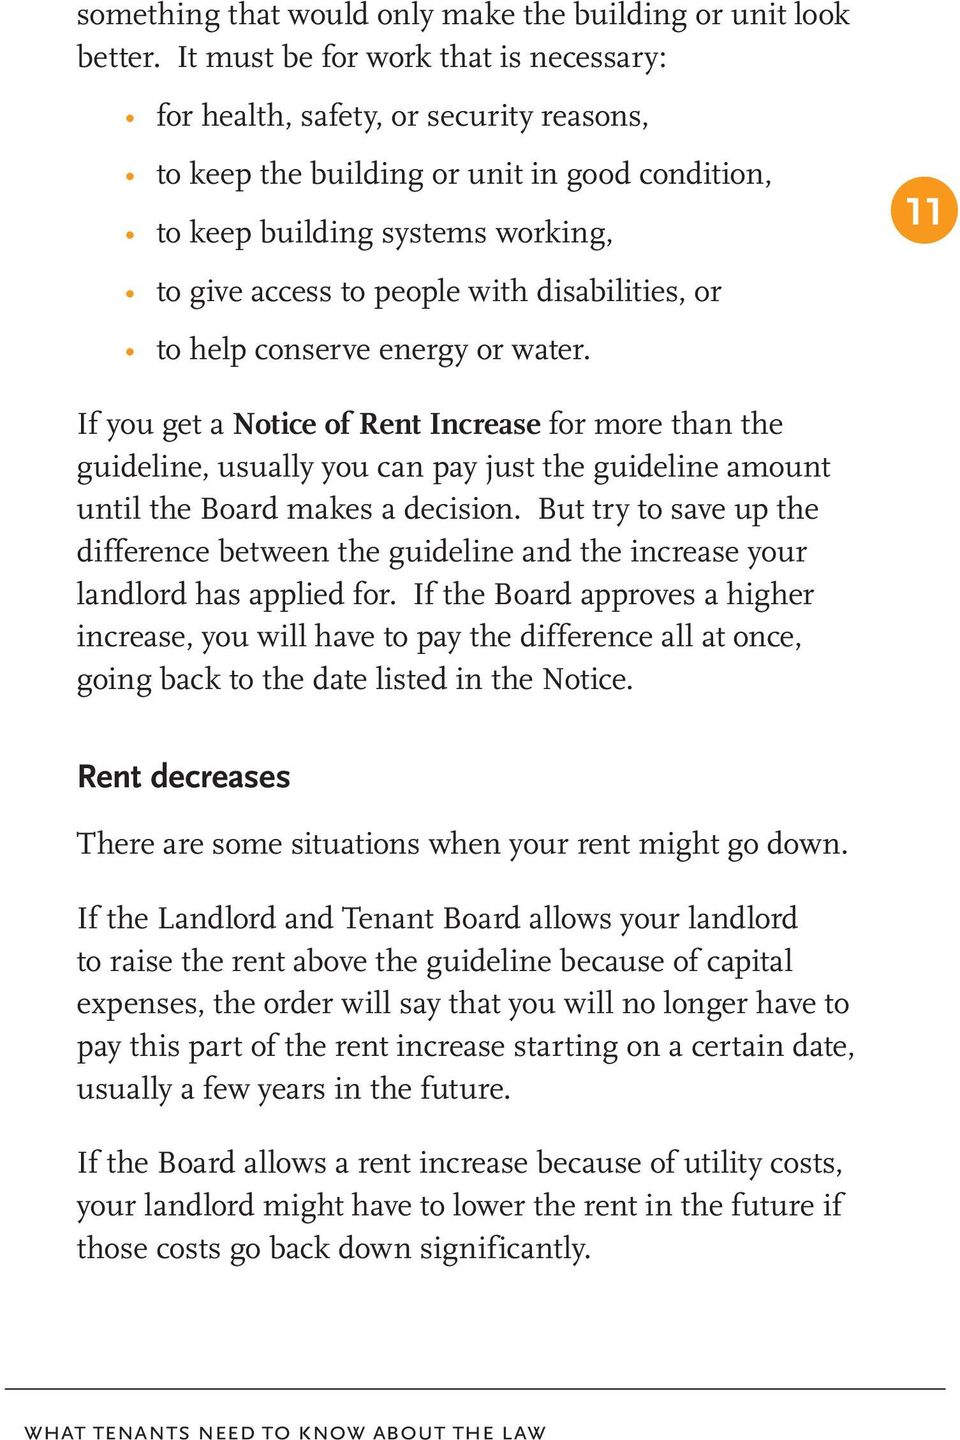 disabilities, or to help conserve energy or water. 11 If you get a Notice of Rent Increase for more than the guideline, usually you can pay just the guideline amount until the Board makes a decision.